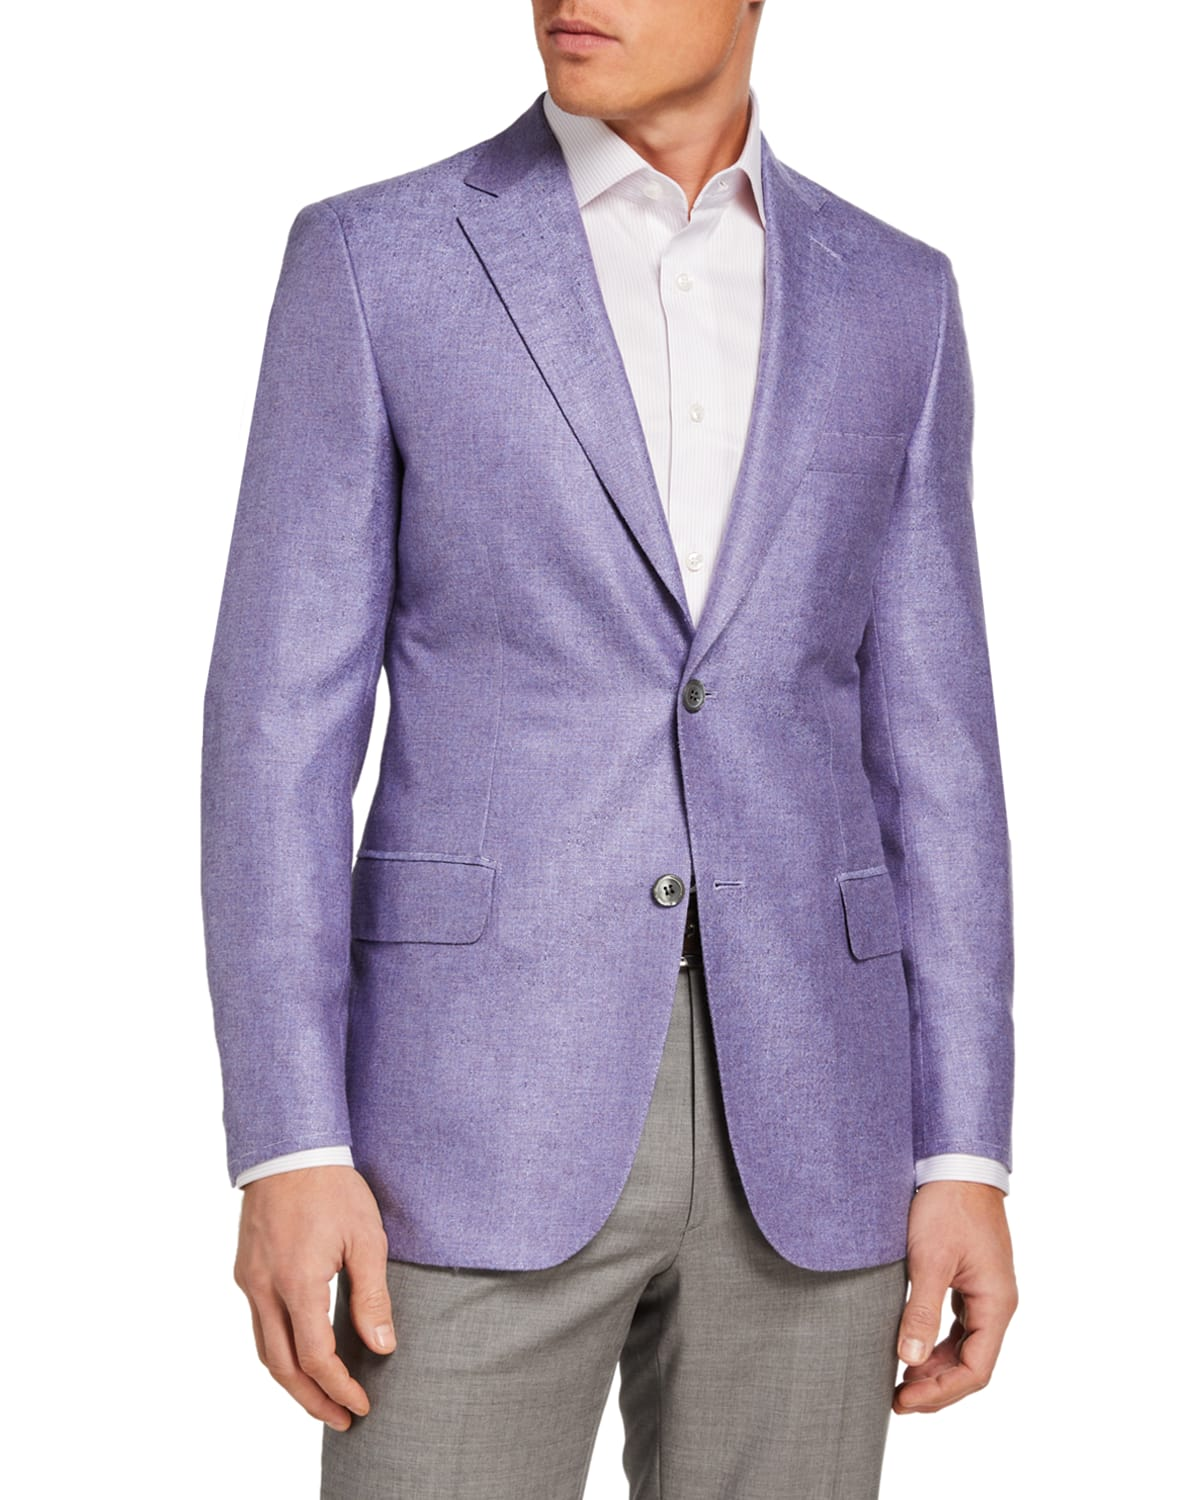 Men's Textured Two-Button Jacket